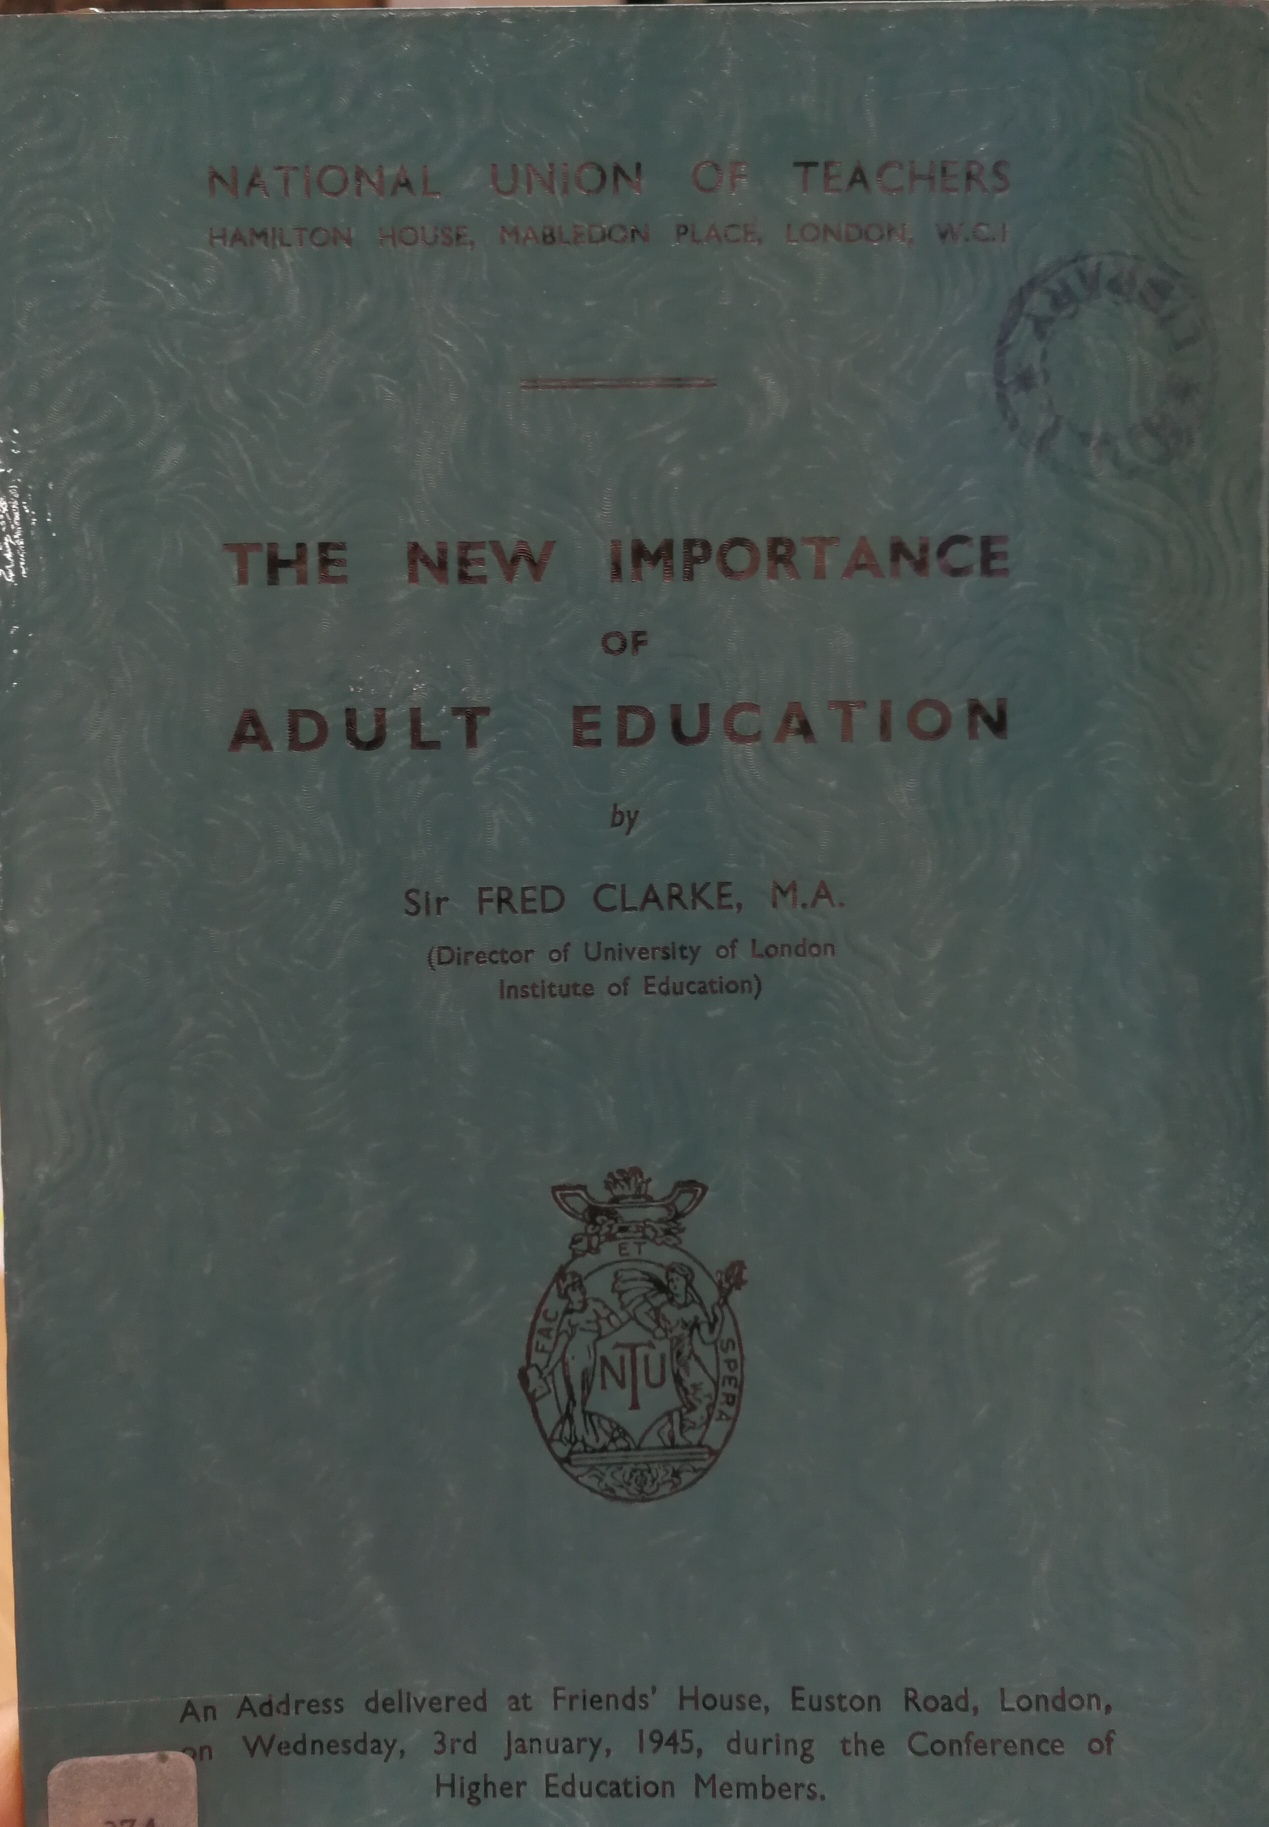 Image icon of a publication on adult education